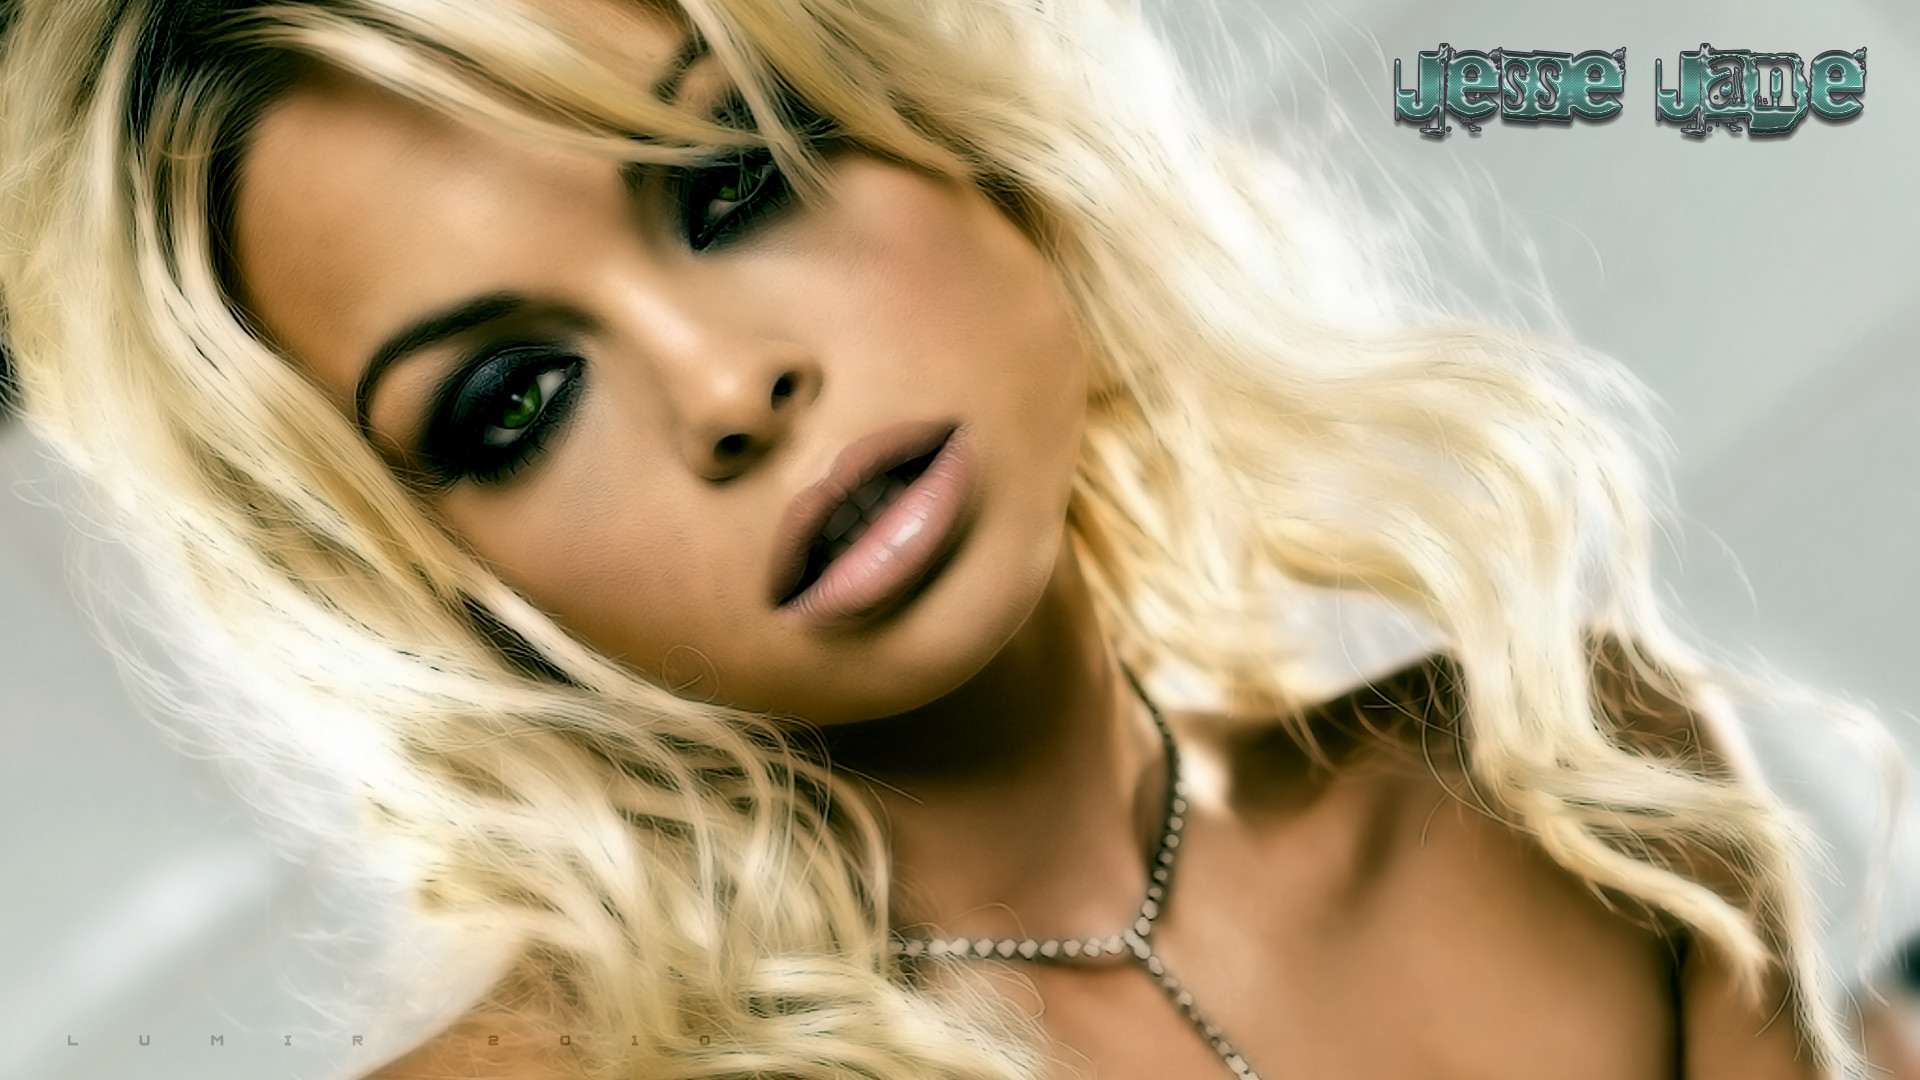 Celebrities lists. Image: jesse jane; celebs lists.